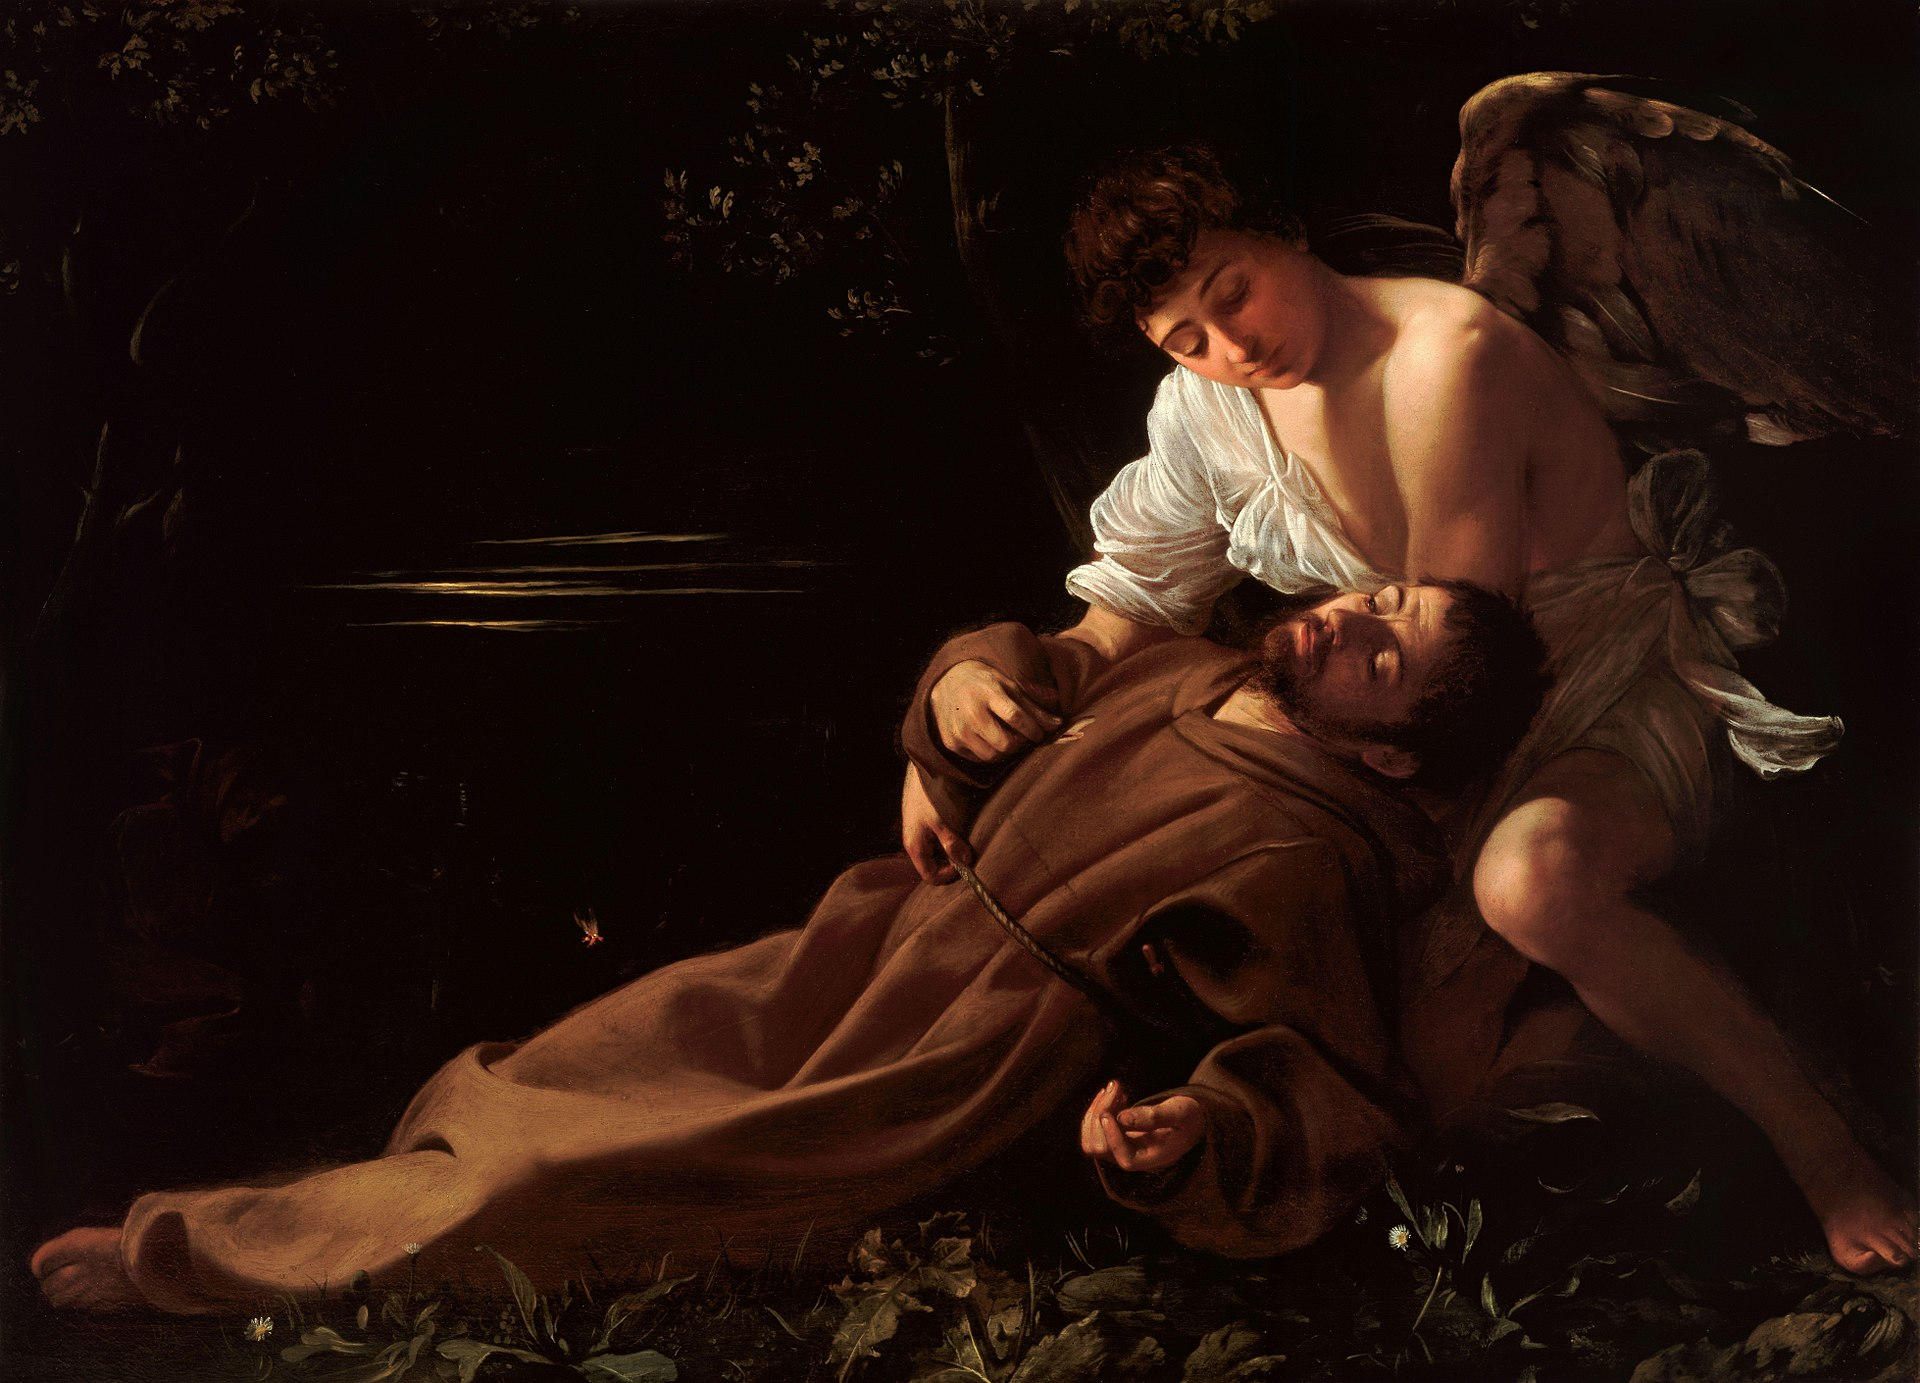 Saint_Francis_of_Assisi_in_Ecstasy-Caravaggio